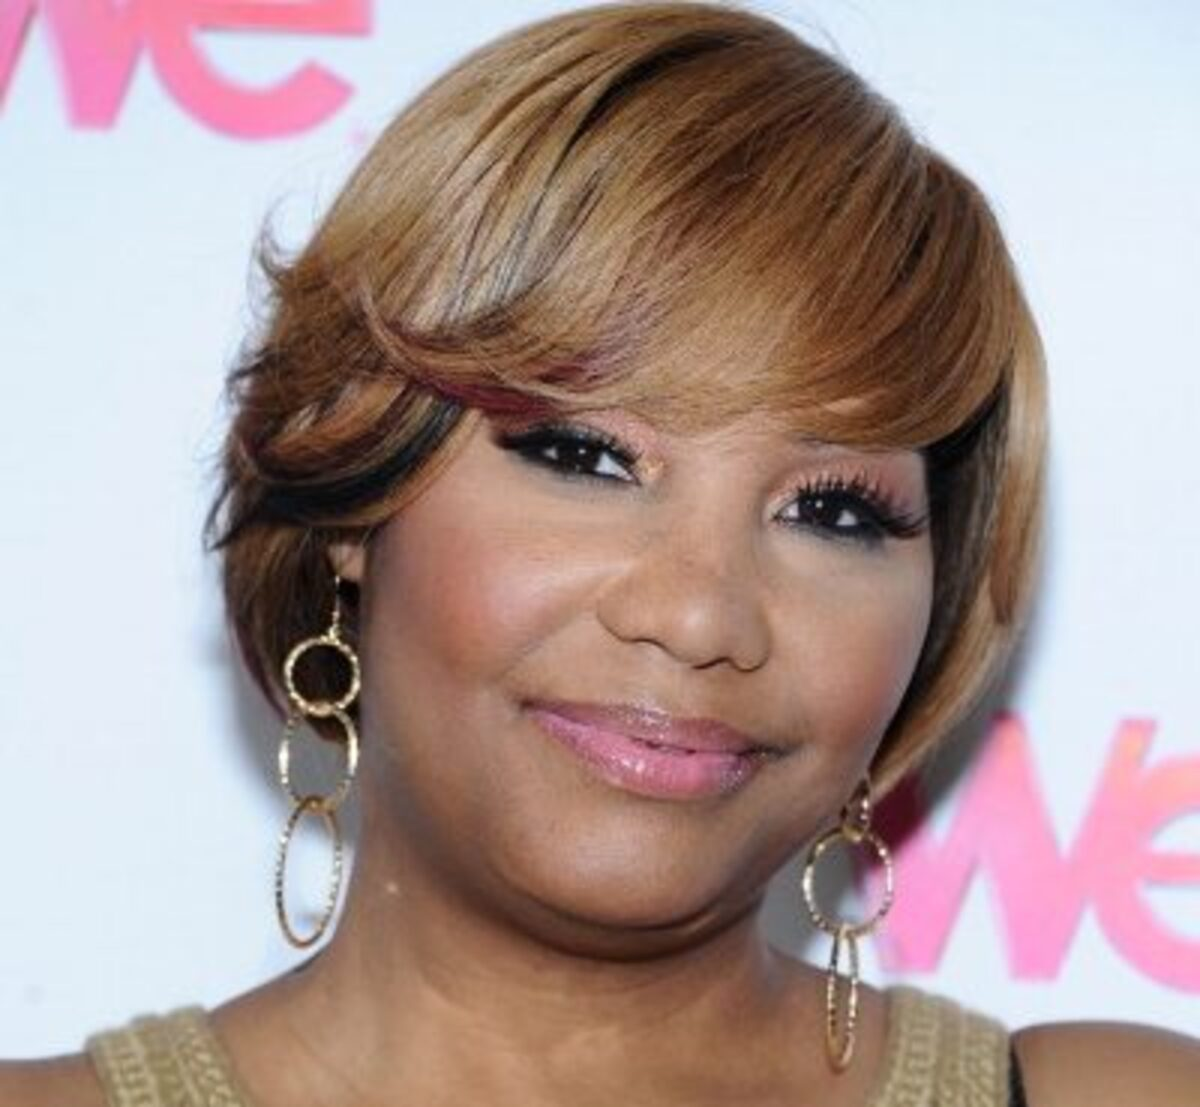 """""""traci-braxton-fans-shocked-and-concerned-after-her-dramatic-weight-loss-pics"""""""